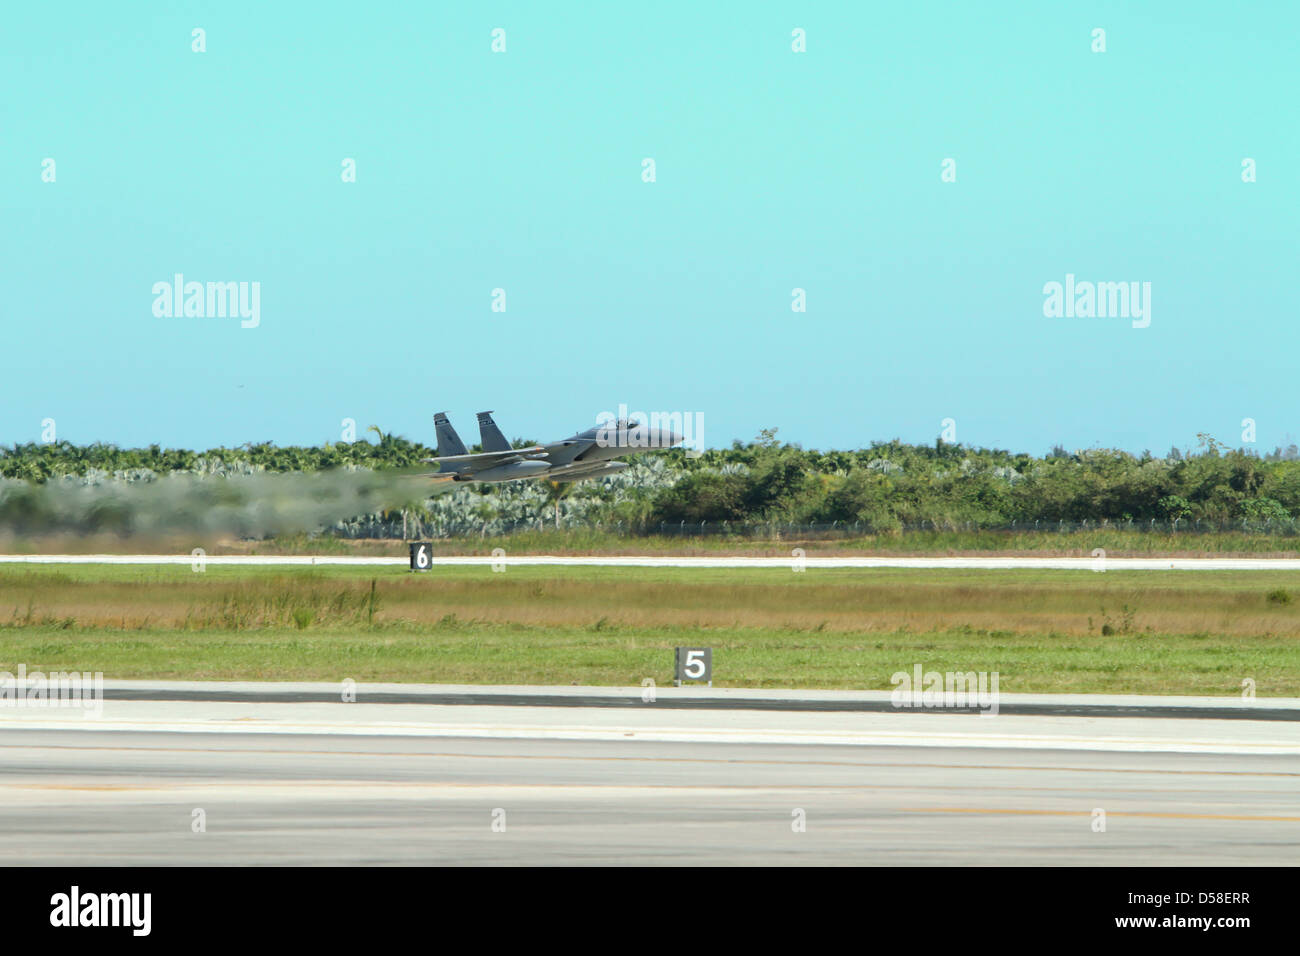 F/A-18, Hornet ,power, war ,fight, fast ,USA, missile, fire, Attack ,fighter jet,U.S. Navy's, - Stock Image